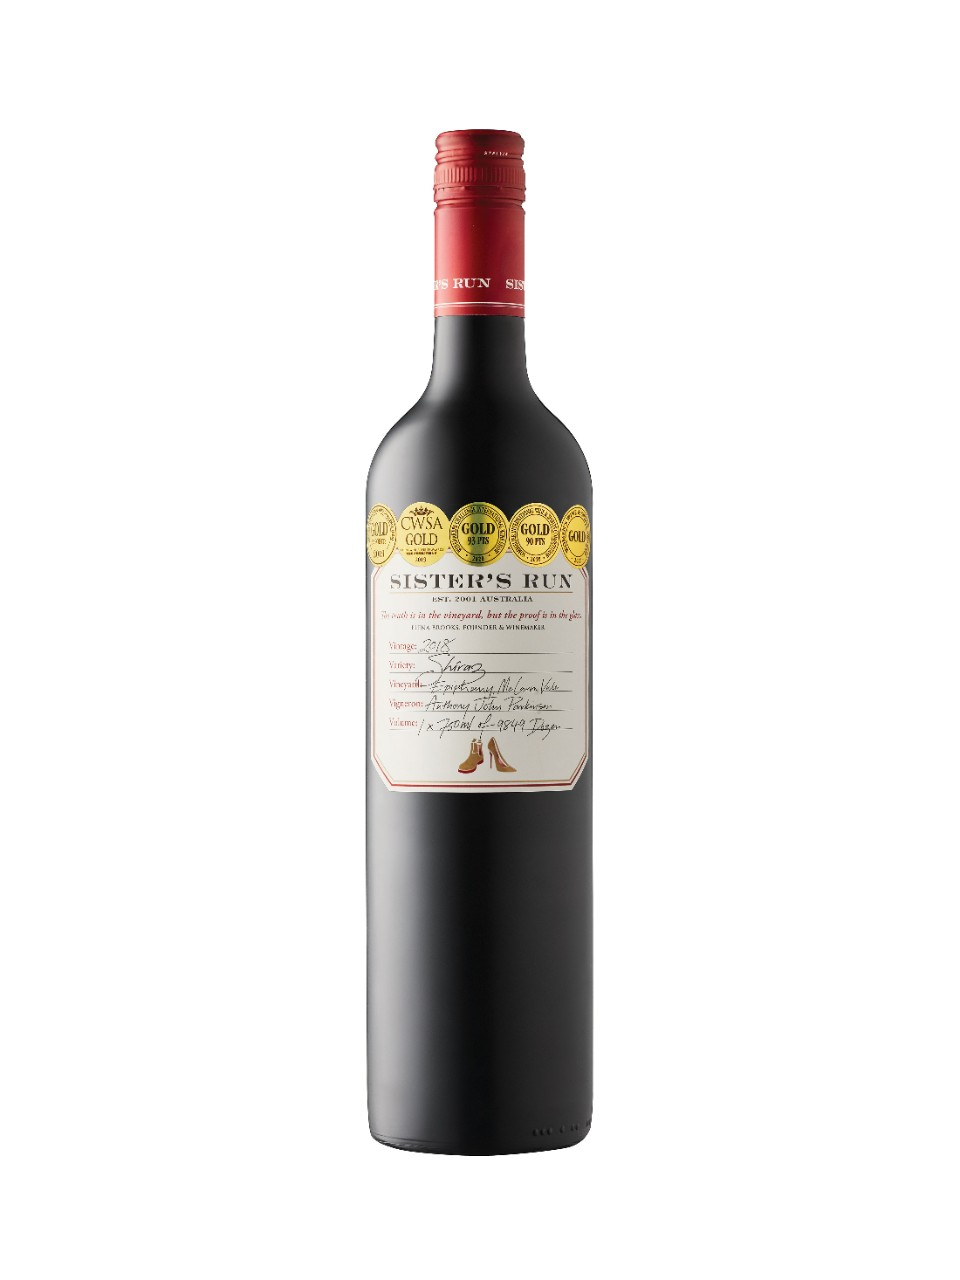 Sister's Run Epiphany Shiraz 2018 from LCBO